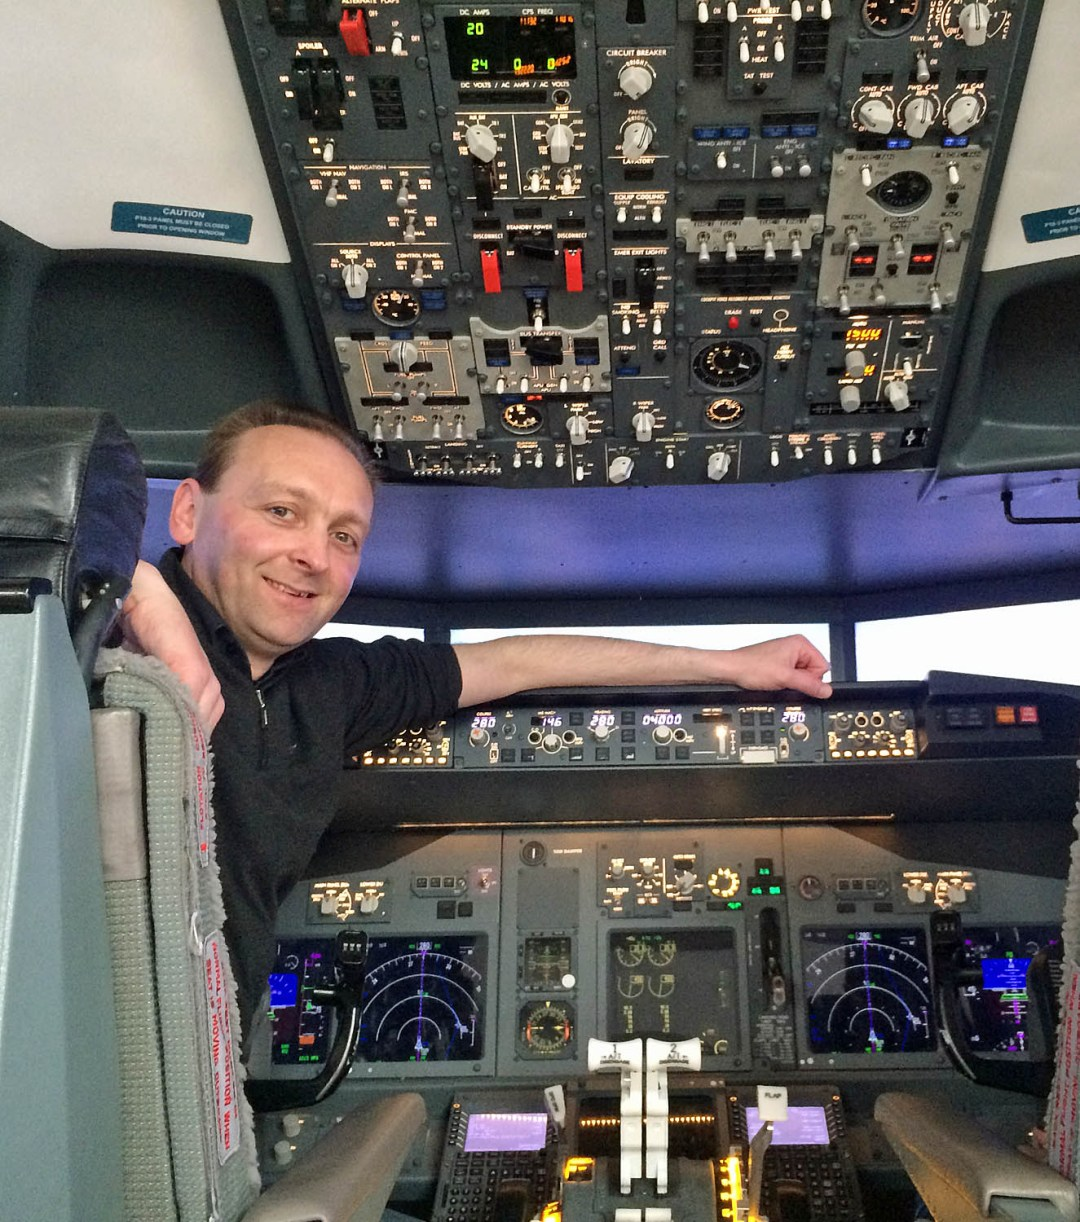 Shane McDonald at the controls of a Boeing 737 flight simulator